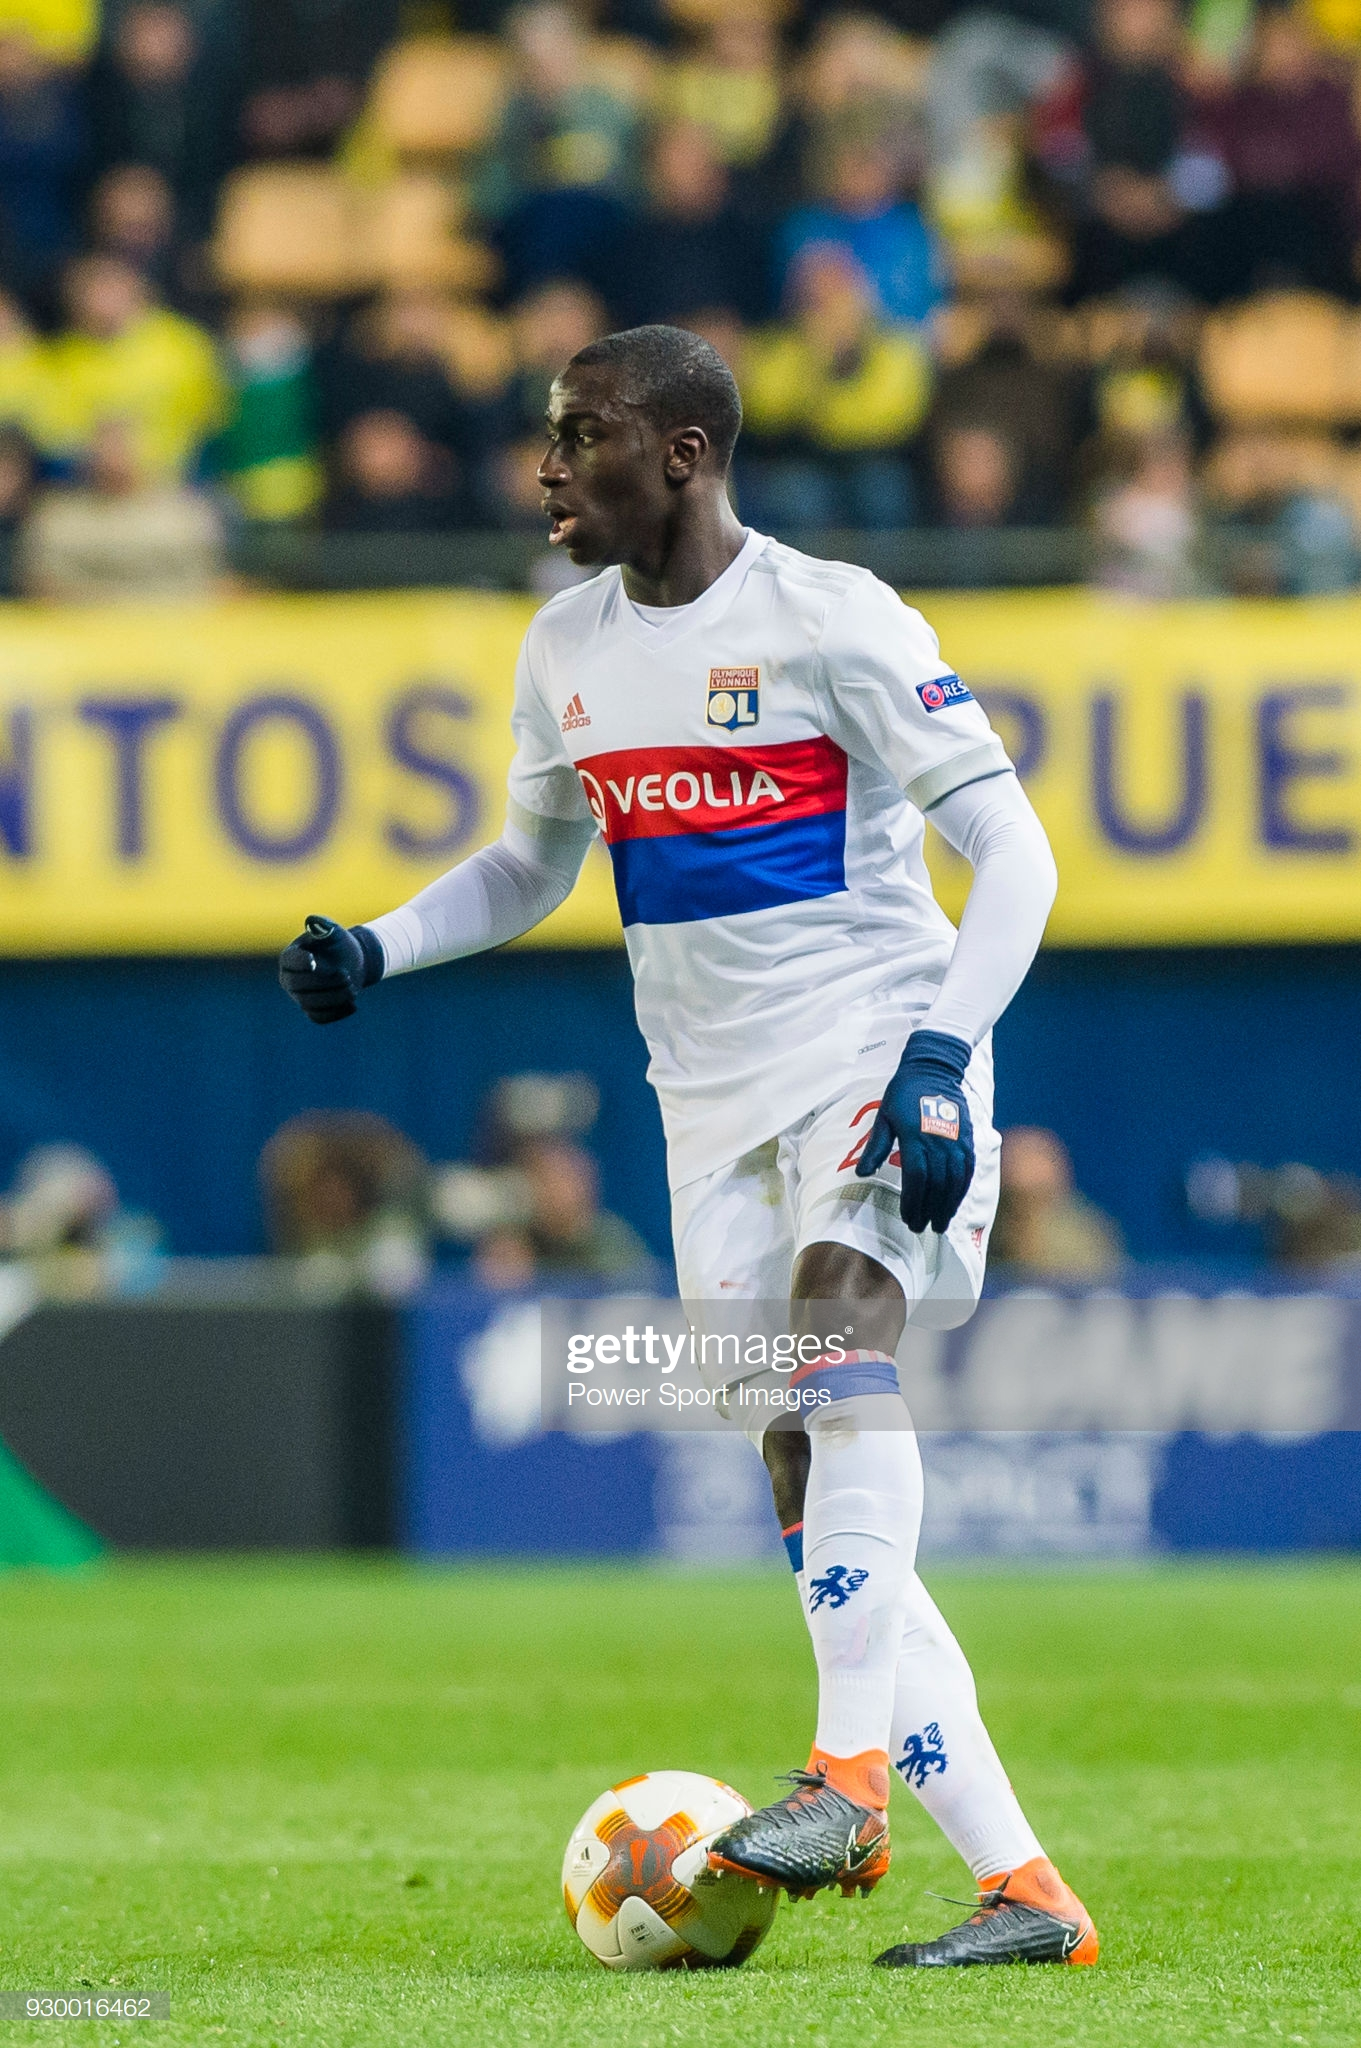 Ferland Mendy of Olympique Lyon in action during the UEFA Europa 1361x2048